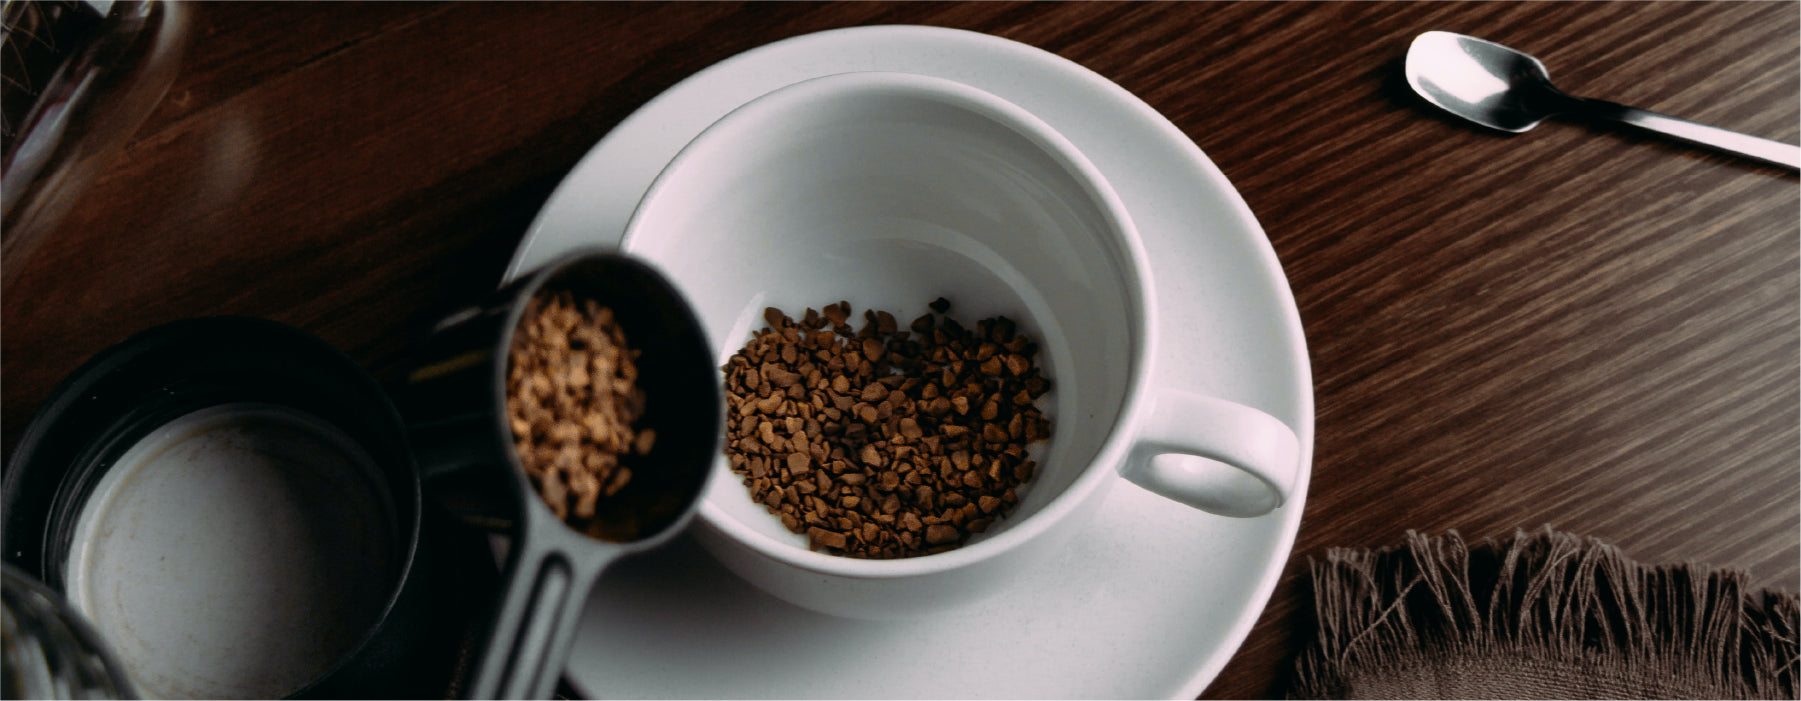 The Best Things Don't Come Easy: Why Instant Coffee Is Bad For You - Coffee Life blog by EspressoWorks